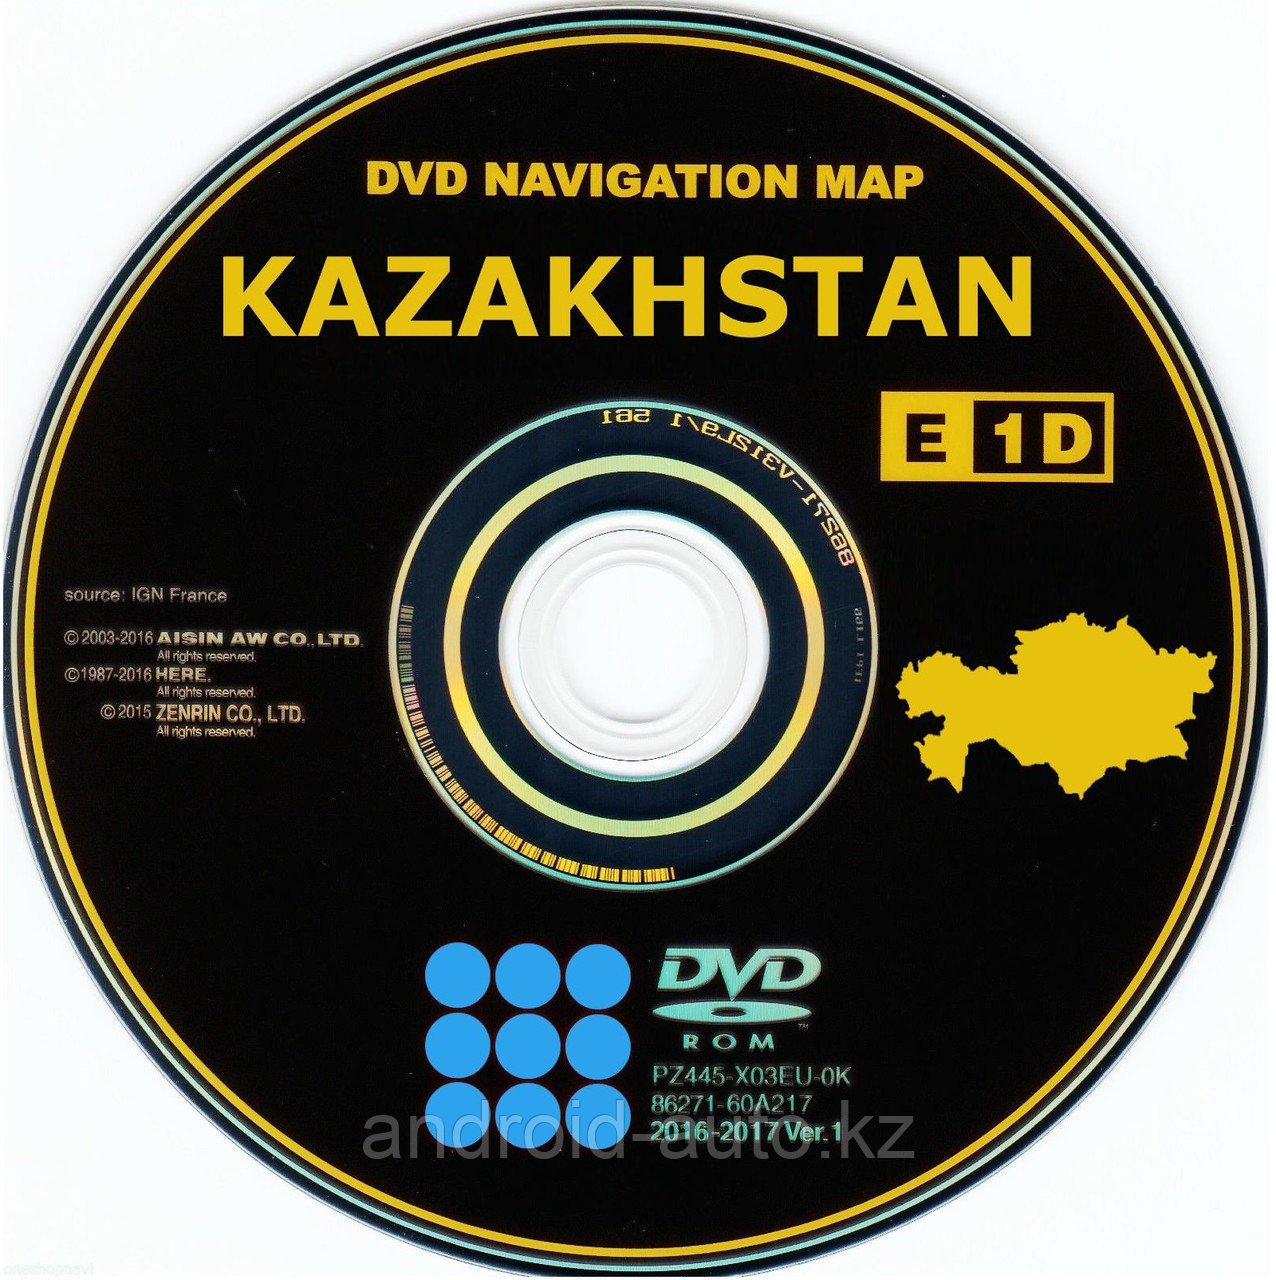 GEN-6 DVD NAVIGATION MAP of KAZAKHSTAN - (DENSO TA10  TA12) TOYOTA TUNDRA SEQUOIA 2008-2012